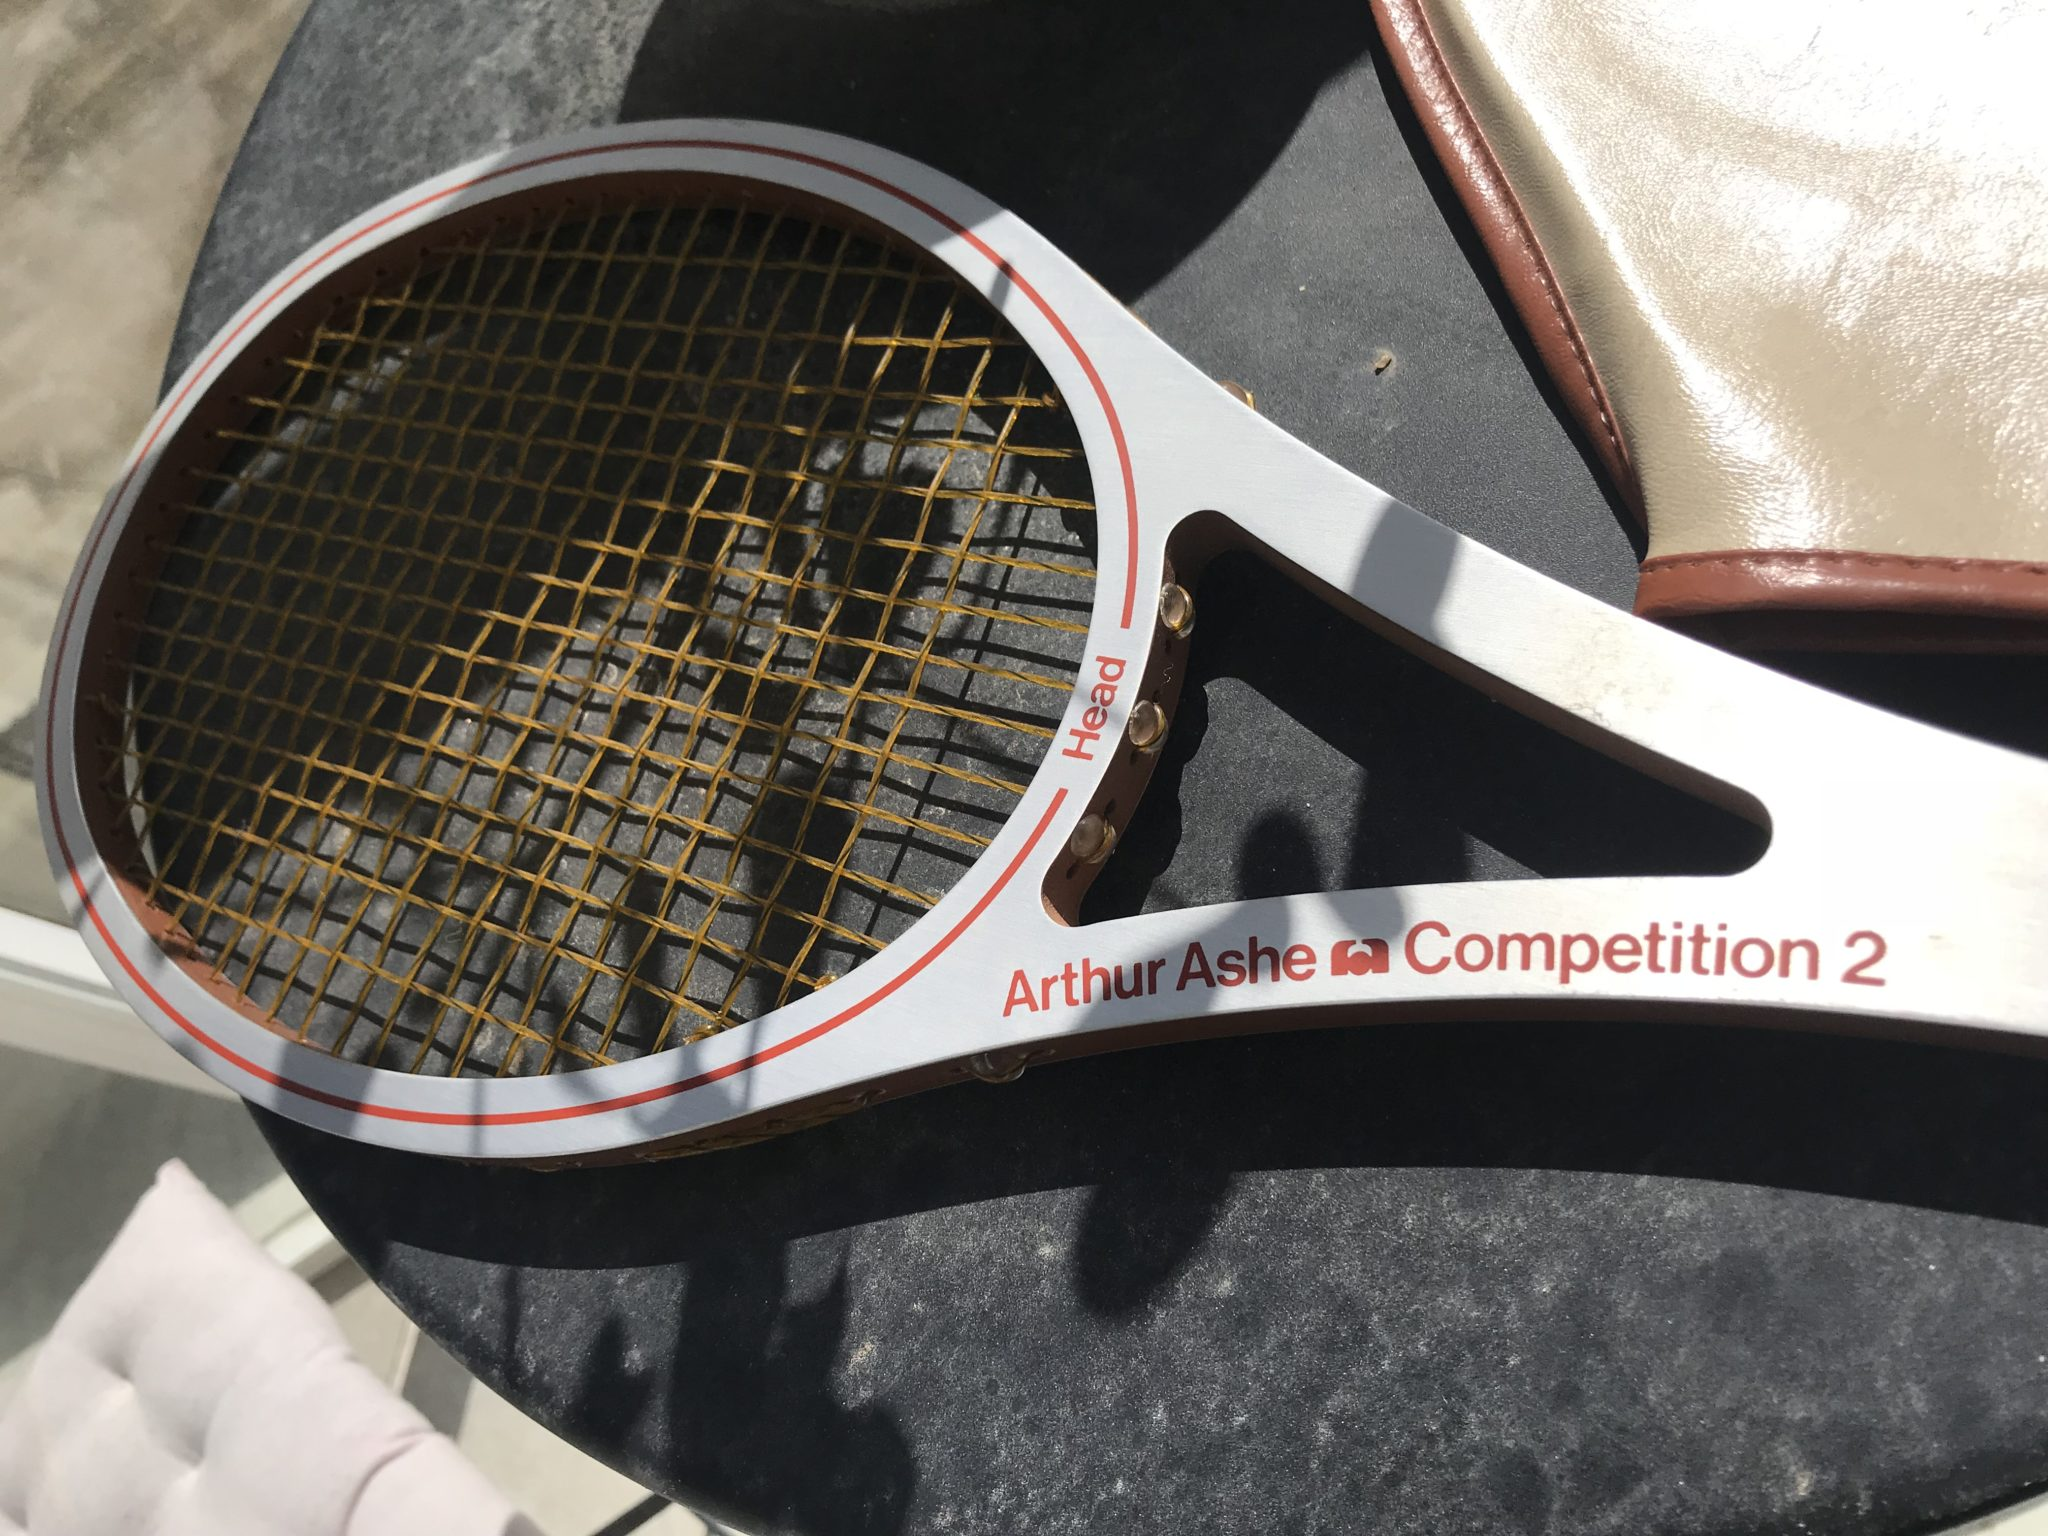 250f974fec This is the racquet Arthur Ashe won Wimbledon with in 1975. Mint condition  and just a nice throwback to the past. Worth watching the commercial for  this ...